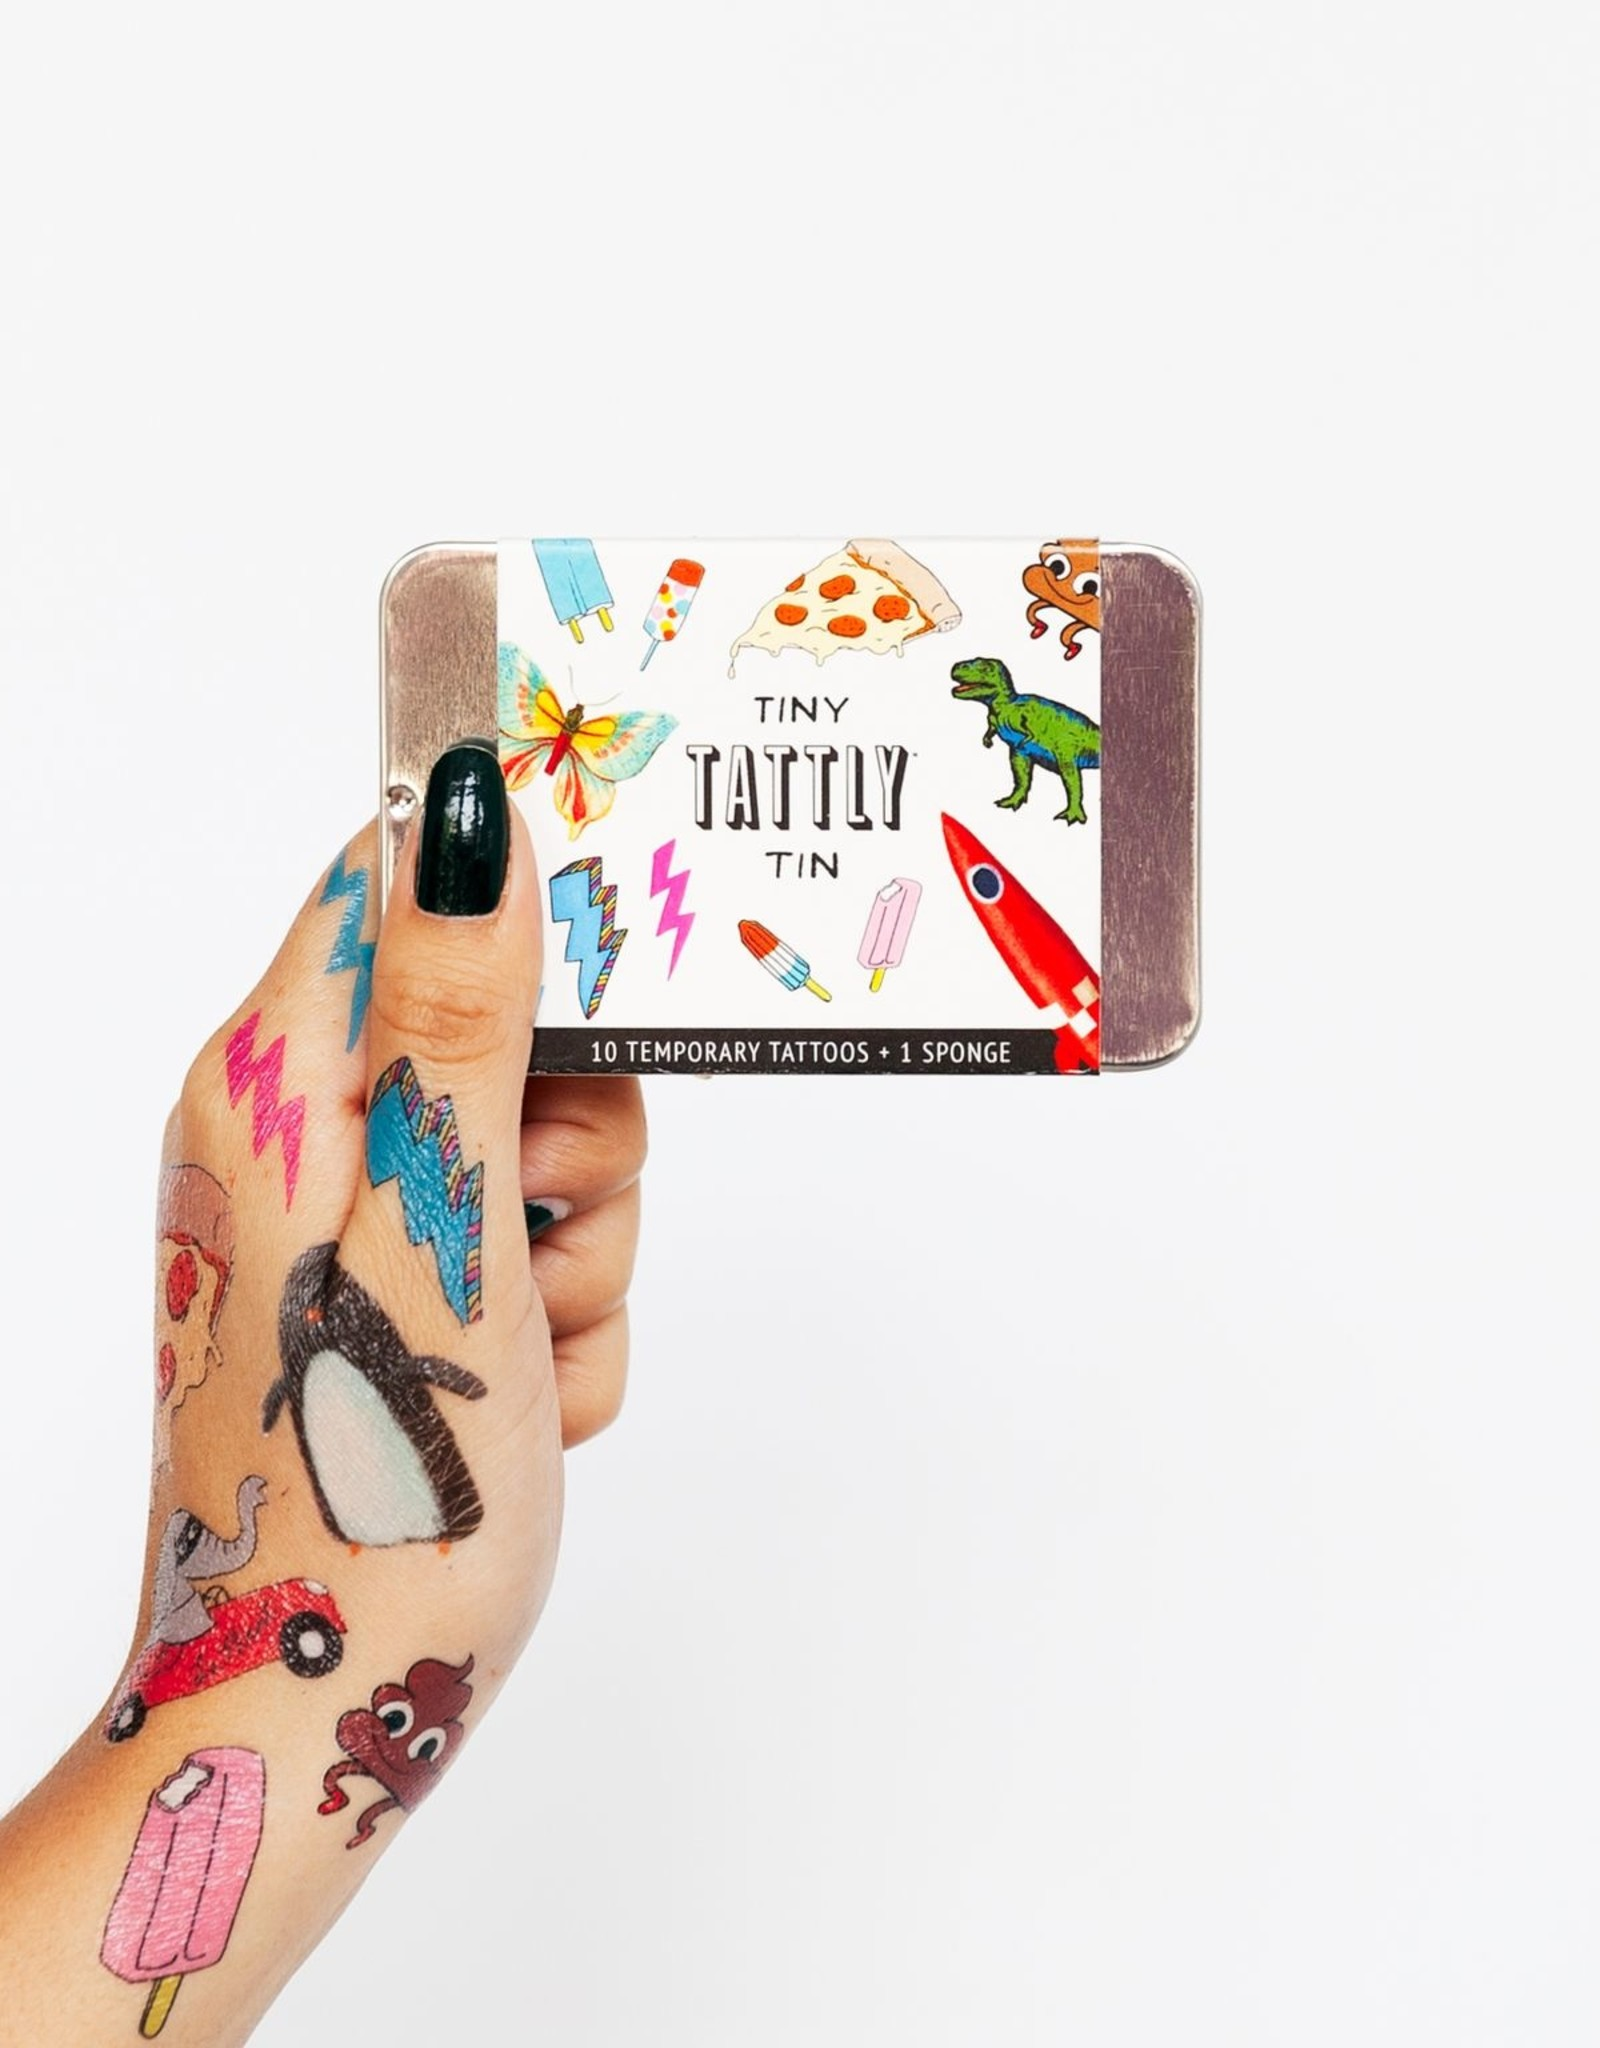 Tattly tattoo tin- funner